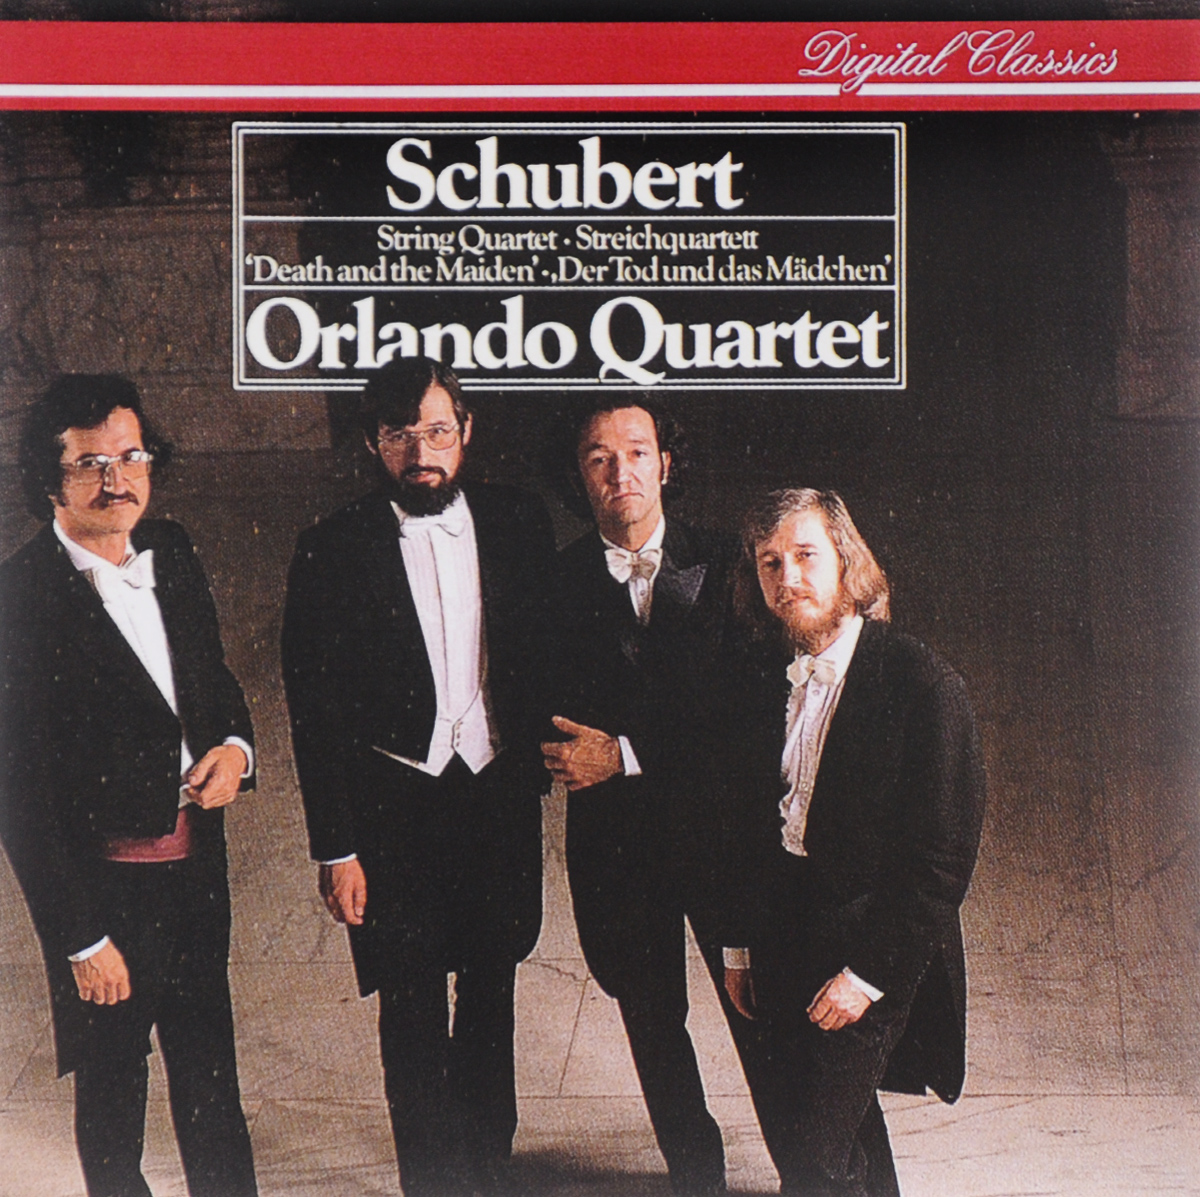 Orlando Quartet. Schubert. String Quartet